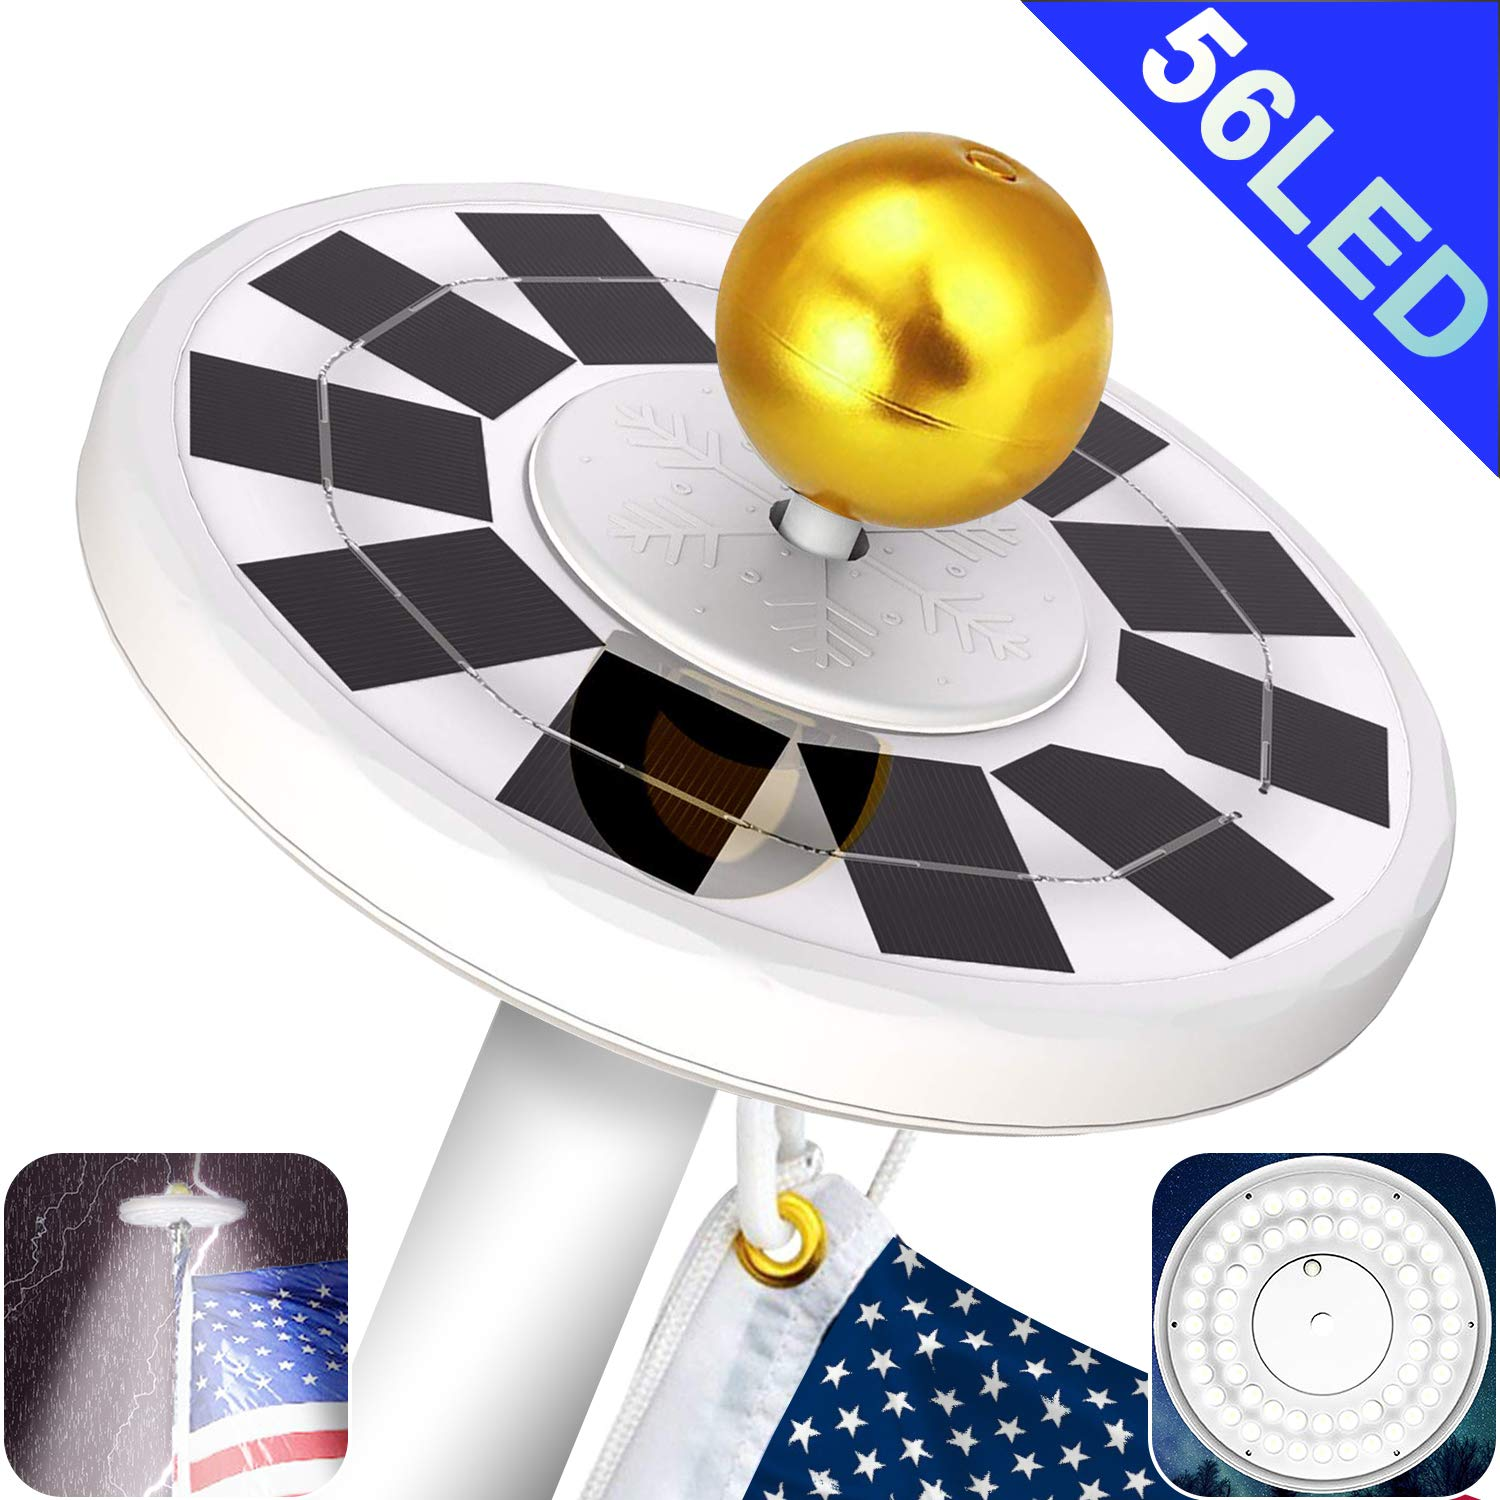 Yakalla 56 LED Solar Flag Pole Light Three-Grade Fifth Generation Adjustment IP67 Waterproof Lighting for Most 15 to 25 Ft Flagpole to Dusk to Dawn Auto On/Off Night by Yakalla